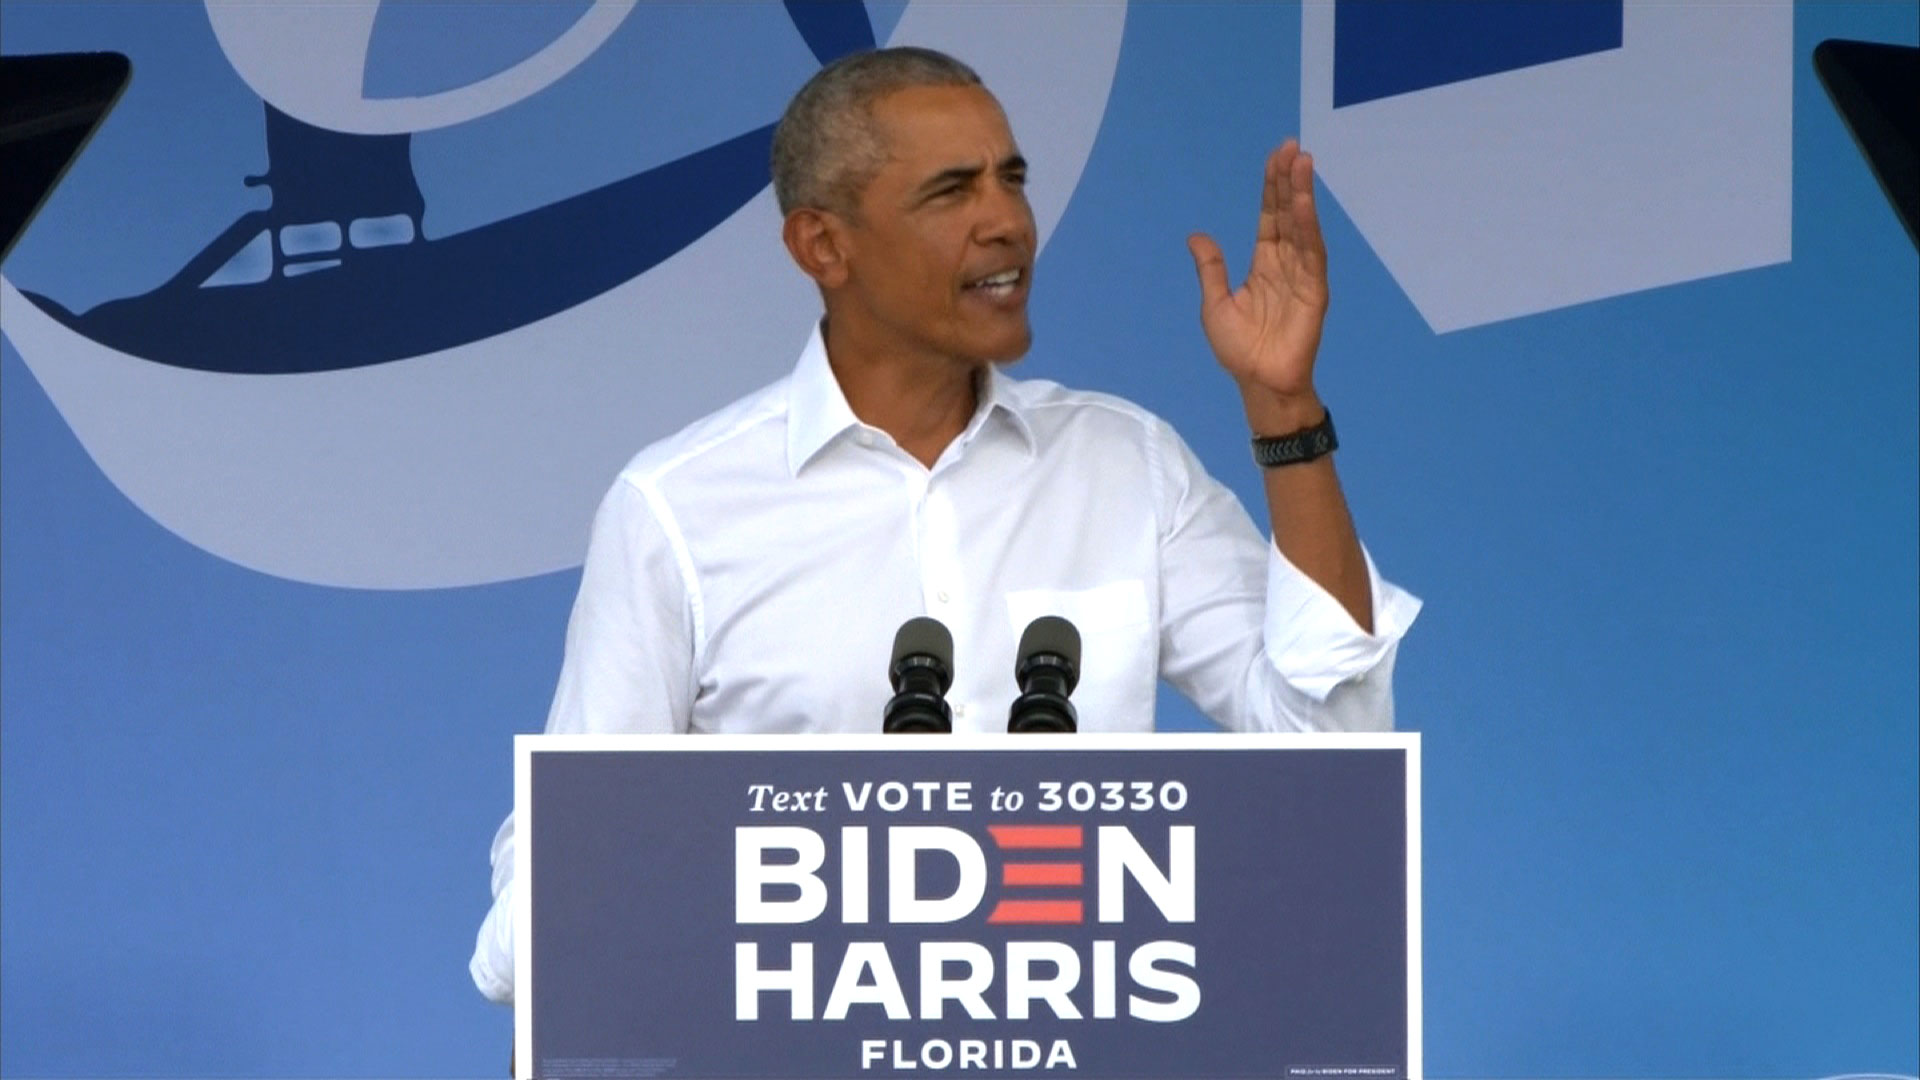 Former President Barack Obama speaks at an event for his former Vice President Joe Biden in Miami, Florida, on Saturday, October 24.